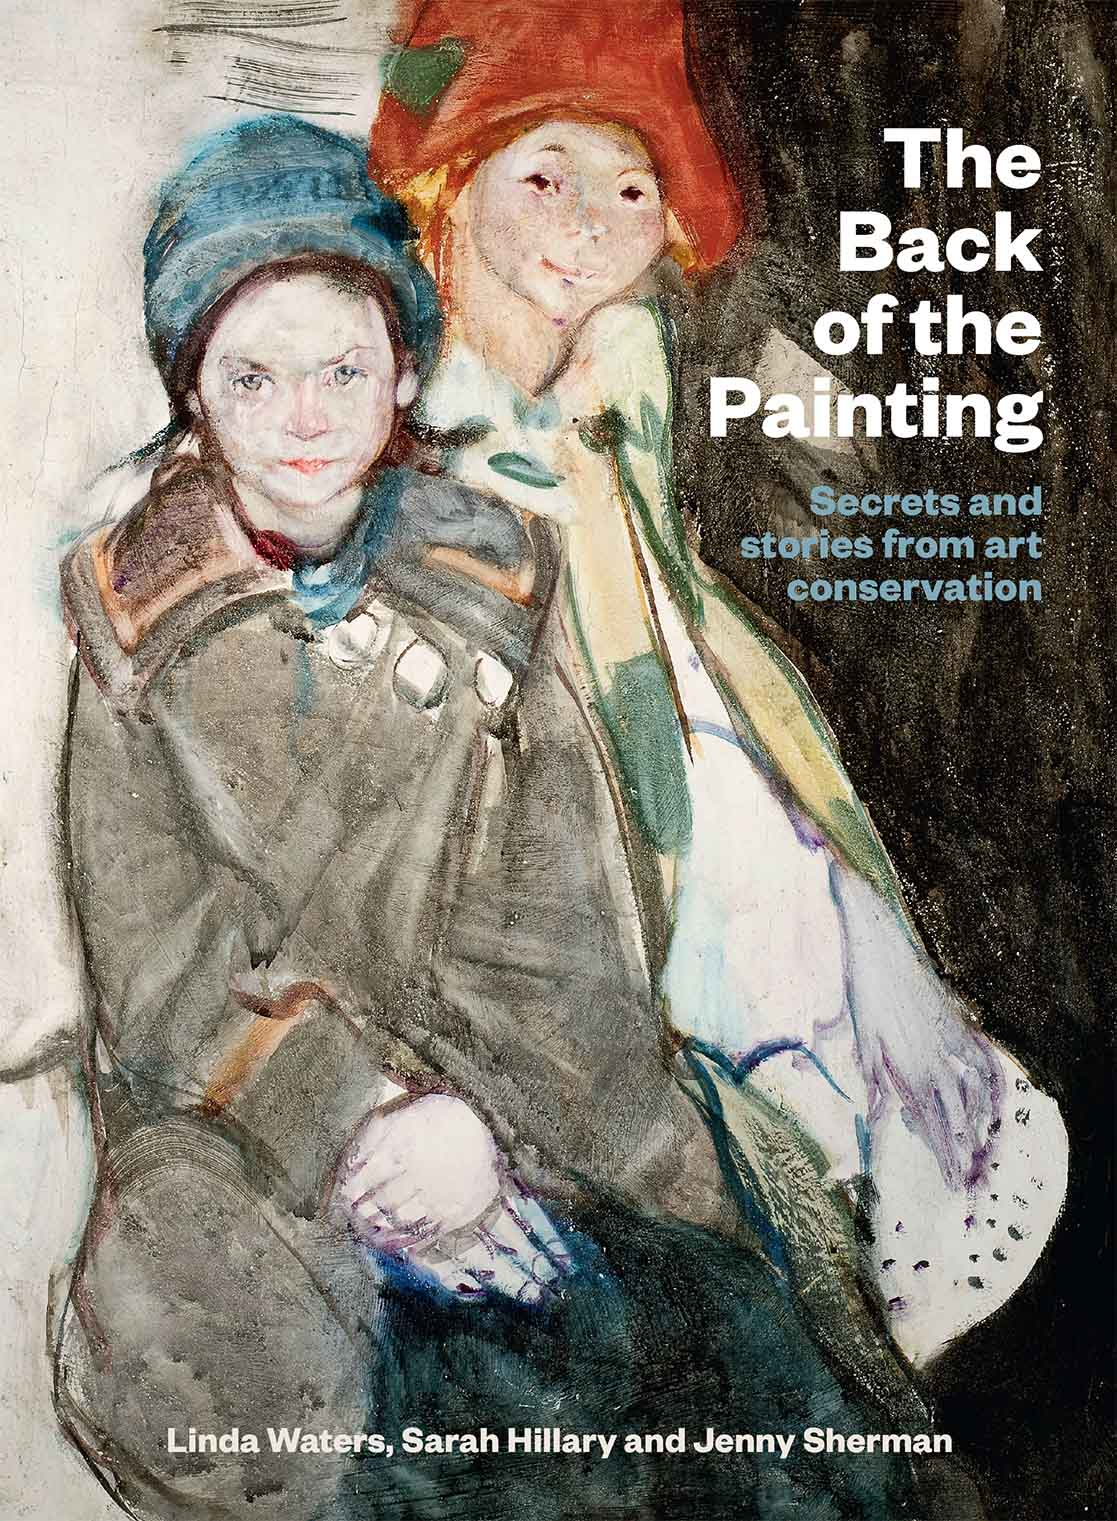 Book event: The Back of the Painting